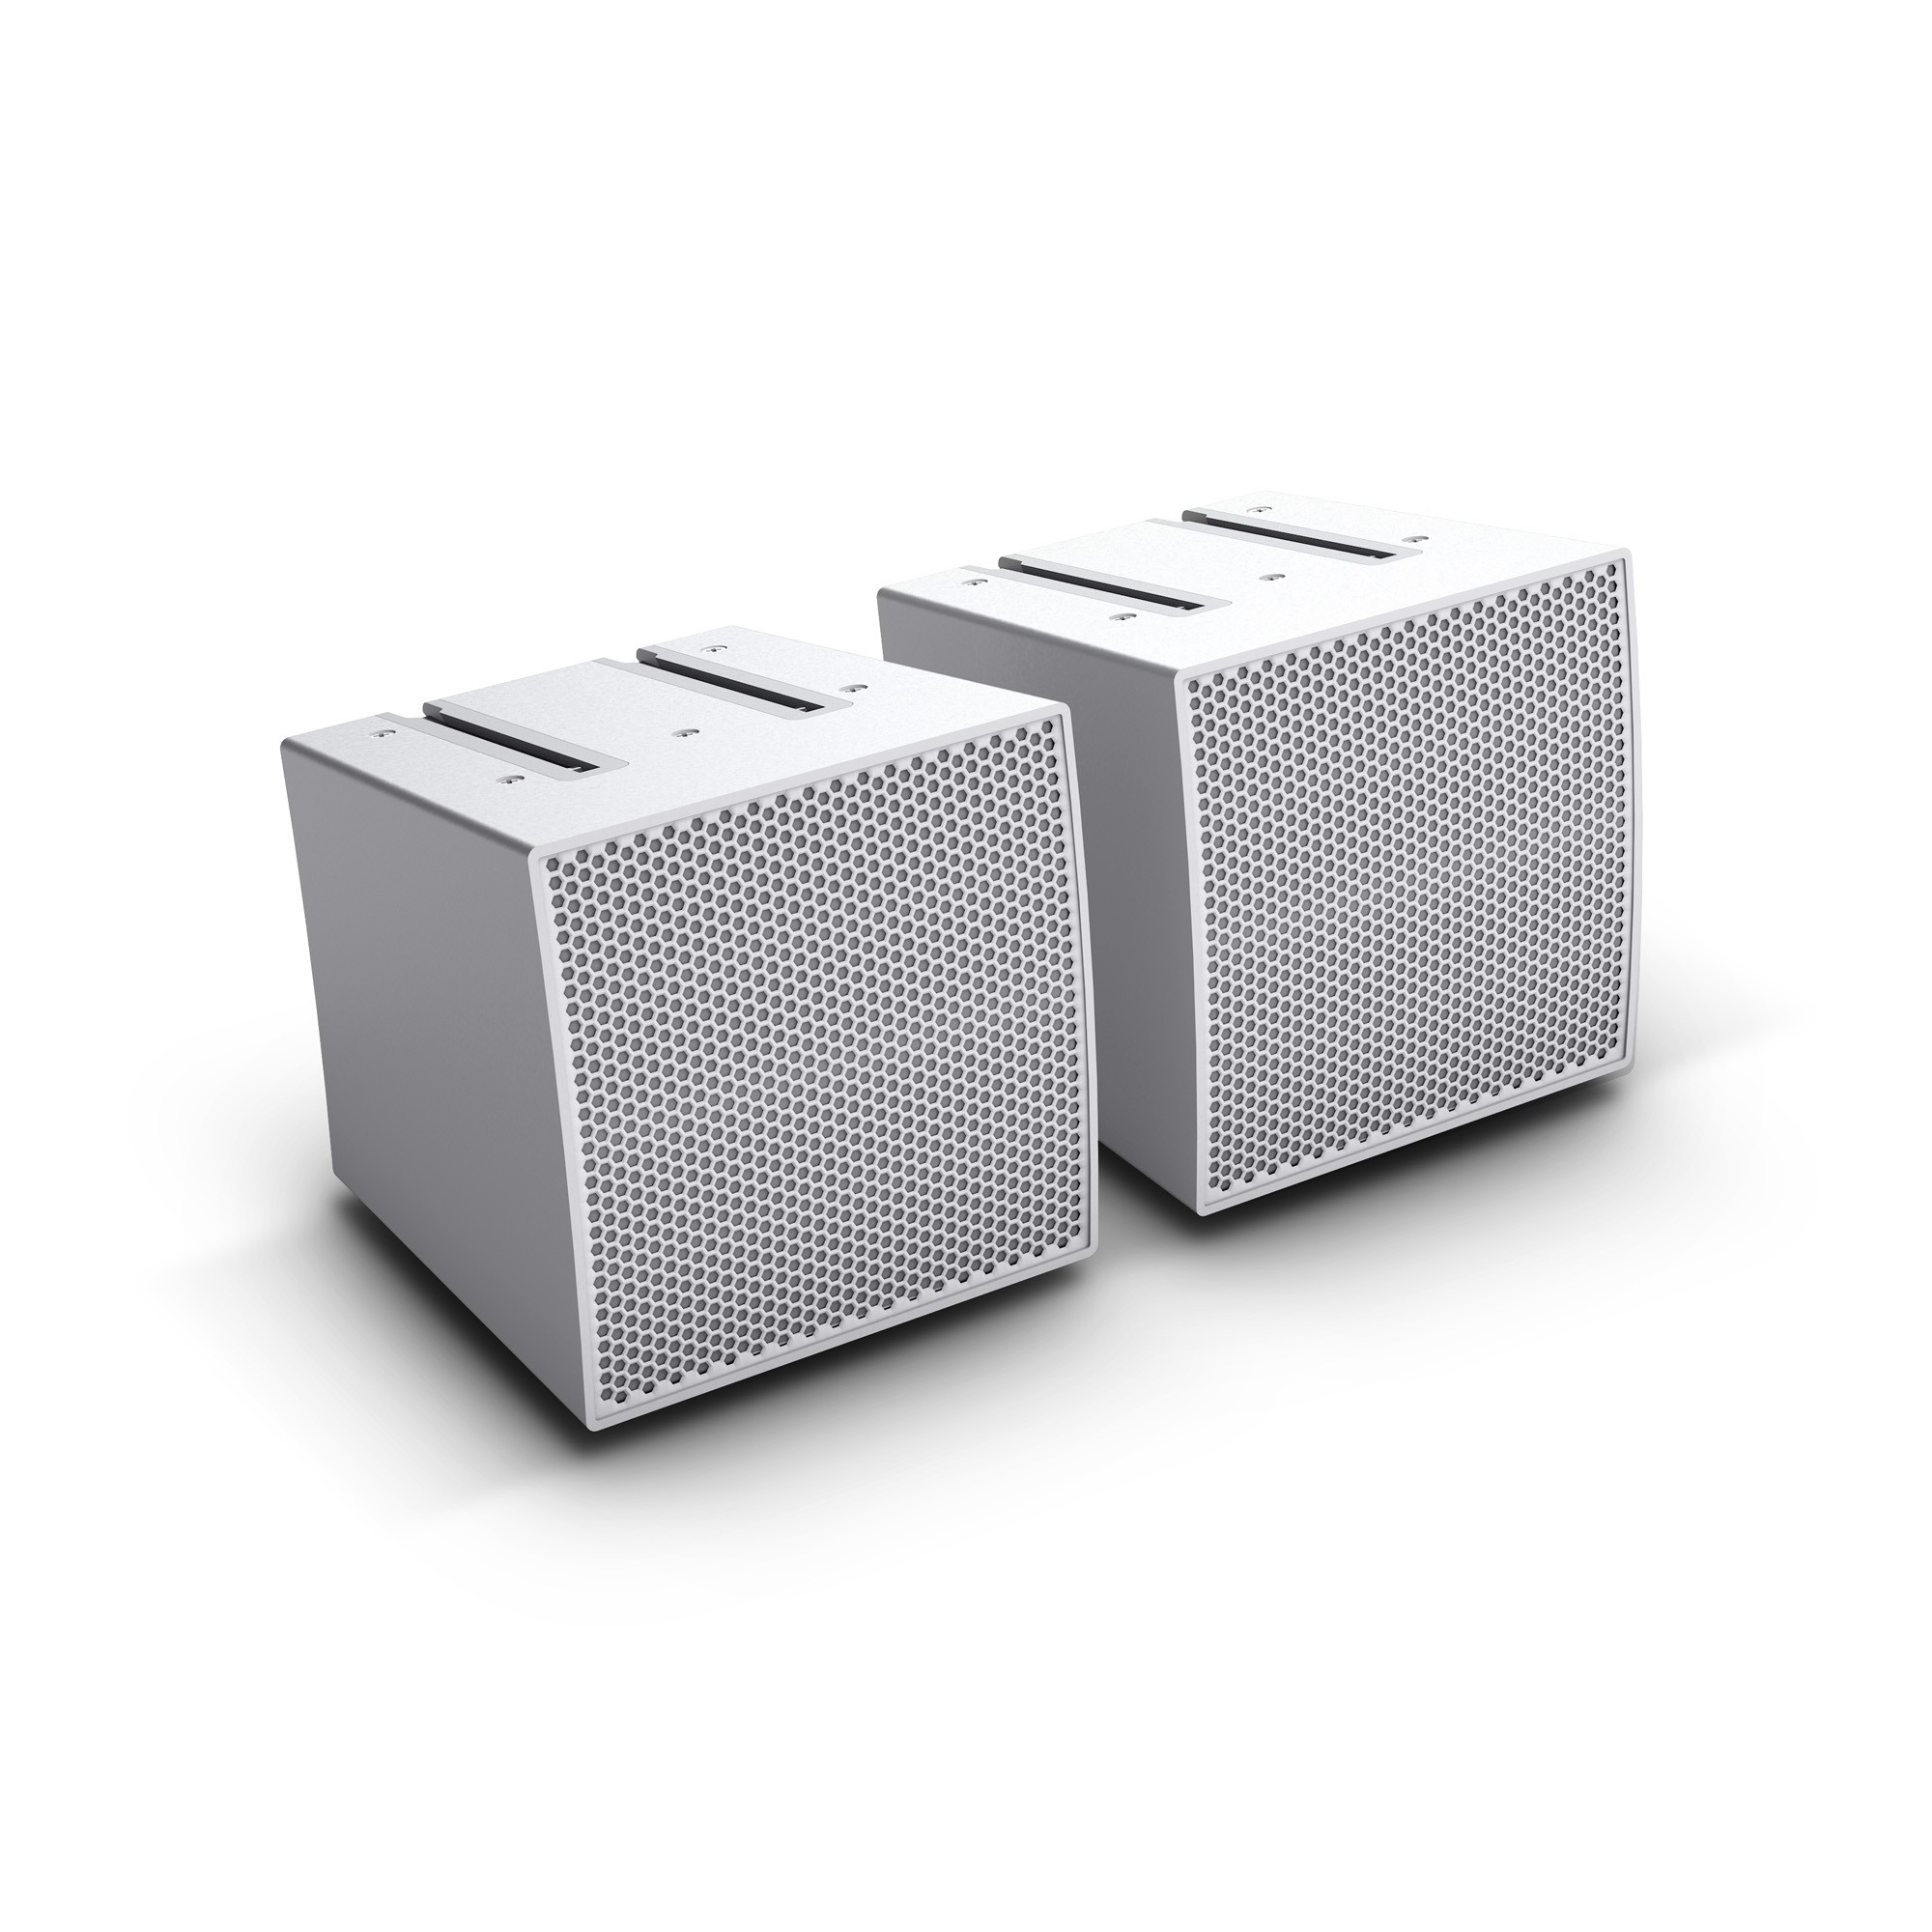 CURV 500 S2 W Two Array satellites for the CURV 500® Portable Array System, white